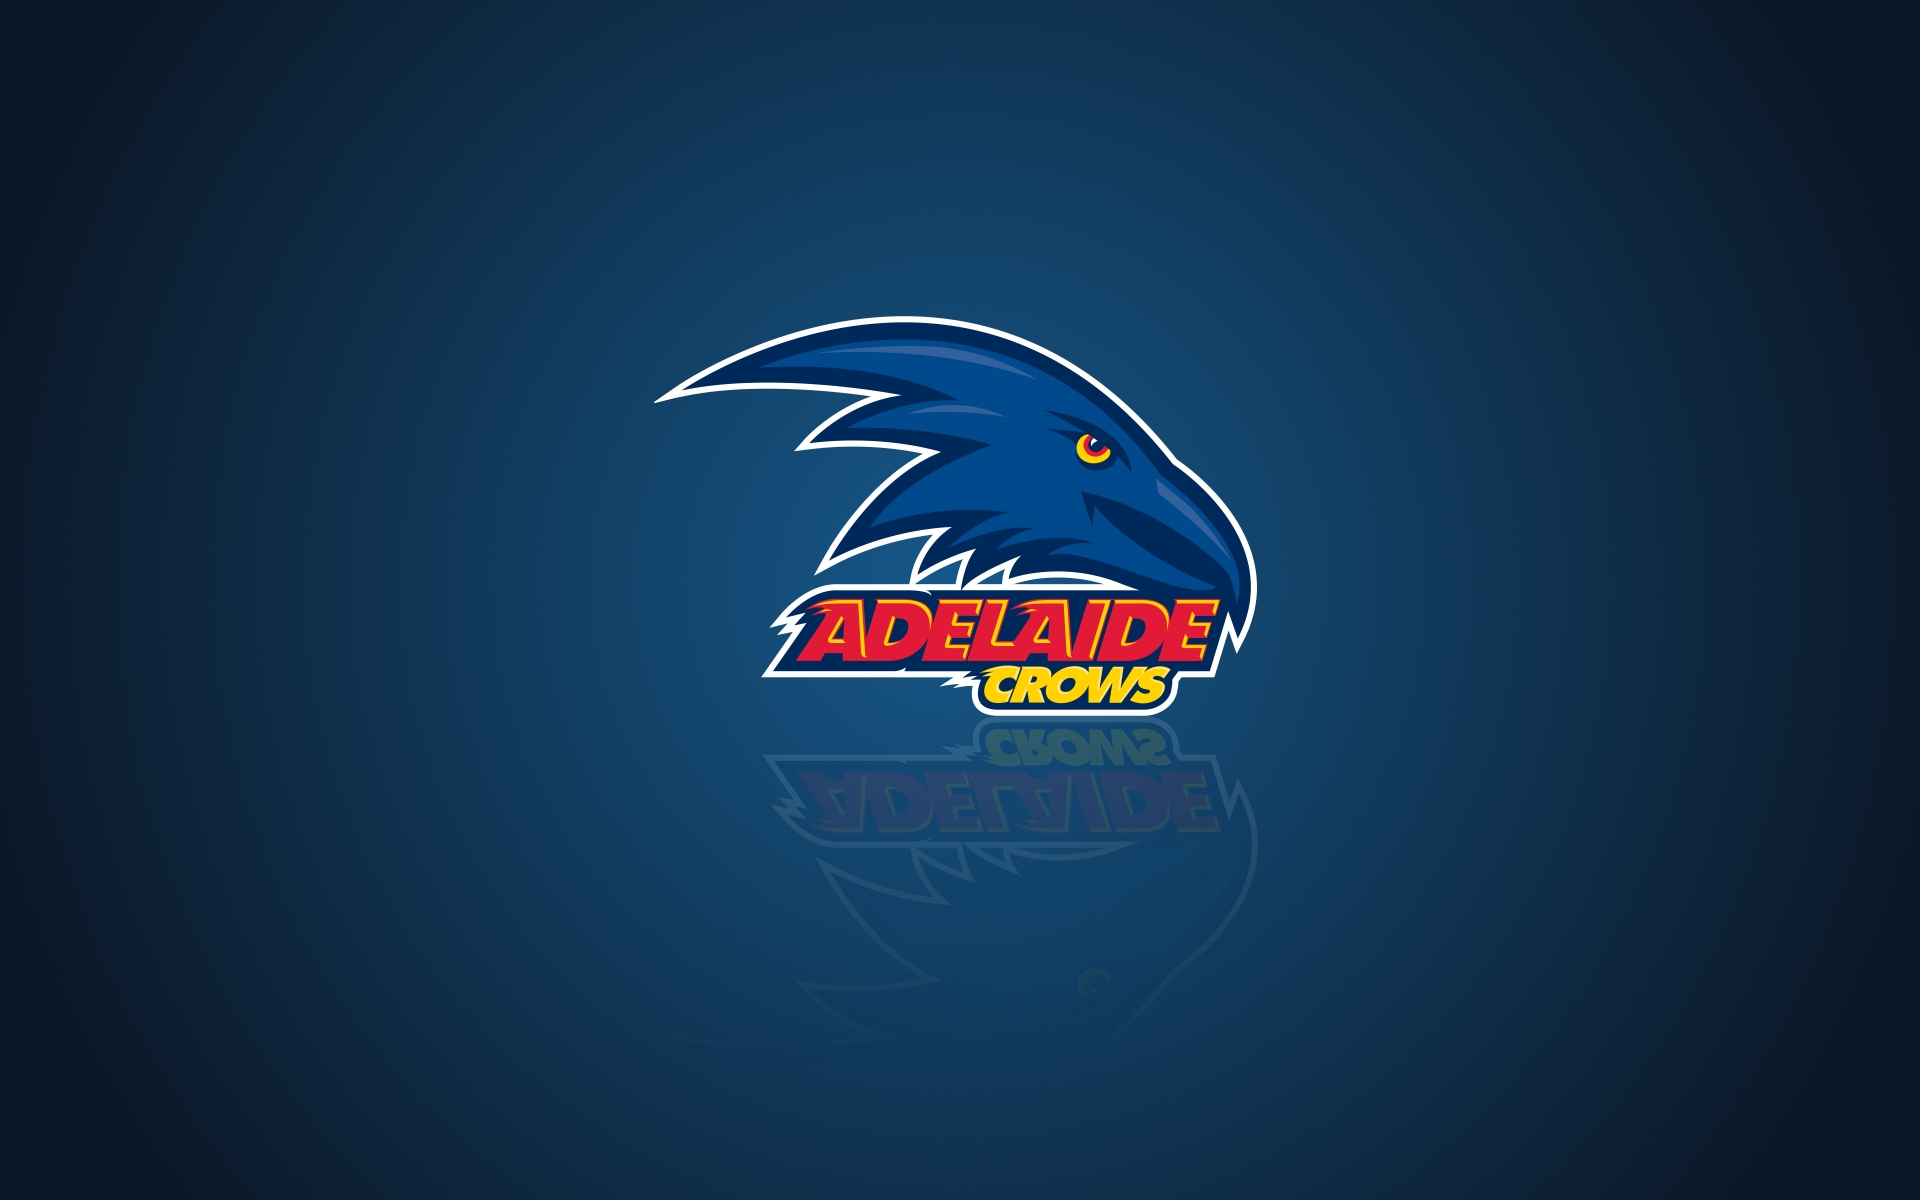 Vancouver Canucks Wallpaper Hd Adelaide Crows Fc Logos Download